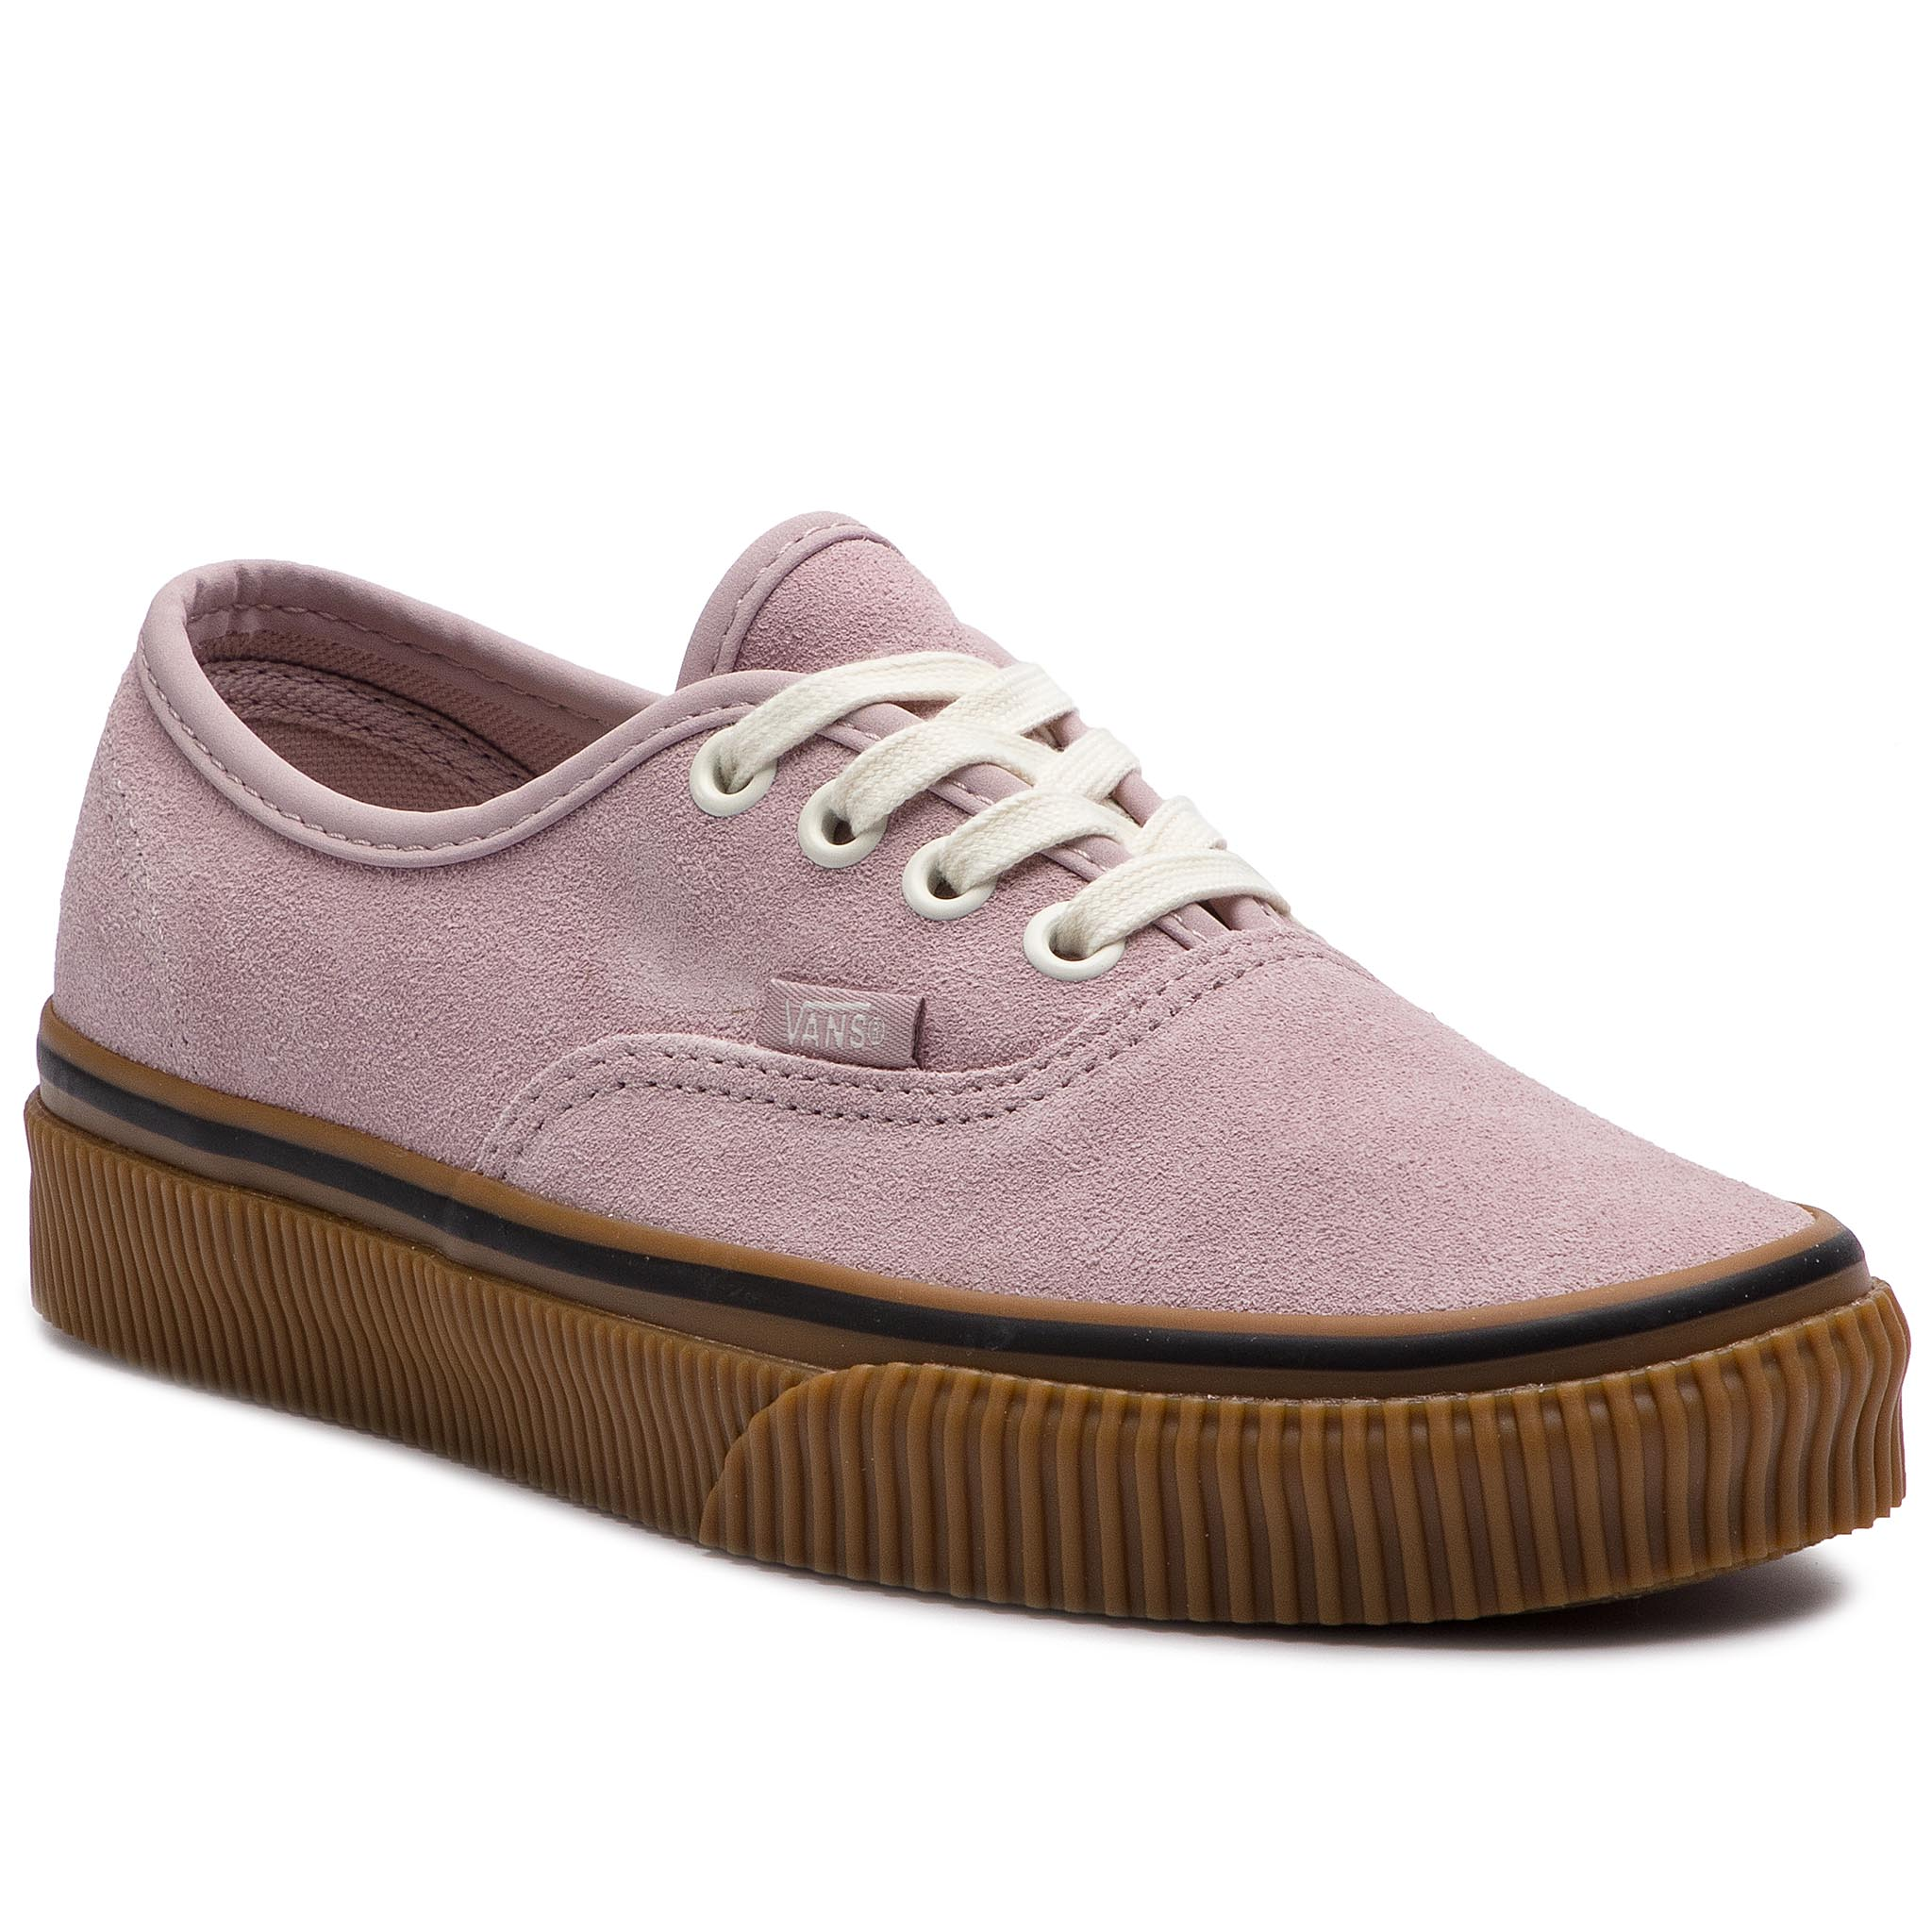 Teniși VANS - Authentic VN0A38EMUKP1 (Suede) Violet Ice/Emboss